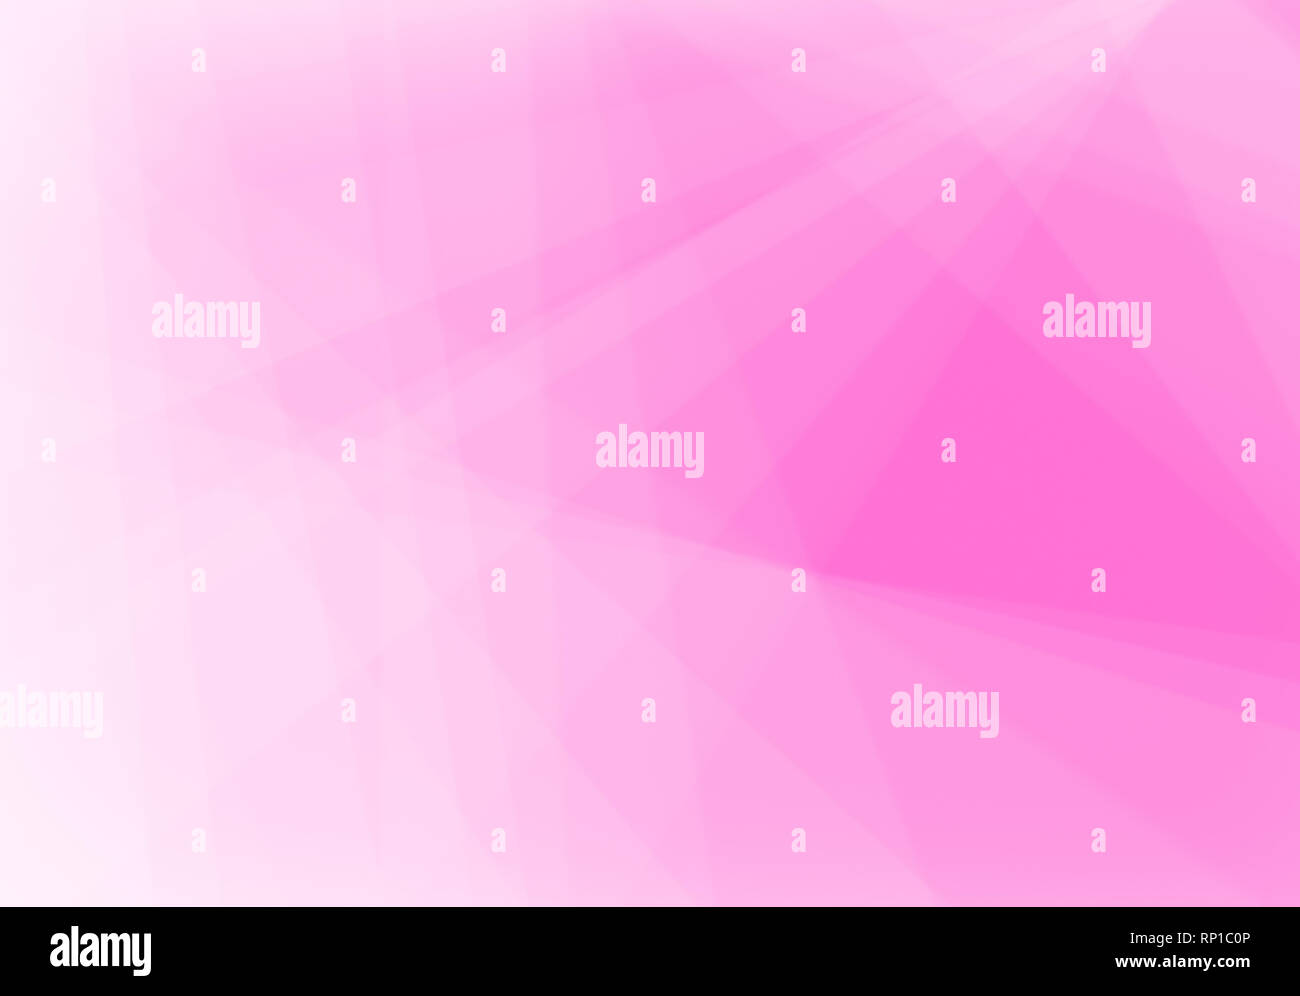 Abstract pink background with light & transparent lines, triangle shapes and diagonal stripes in random pattern. Report or business background concept Stock Photo